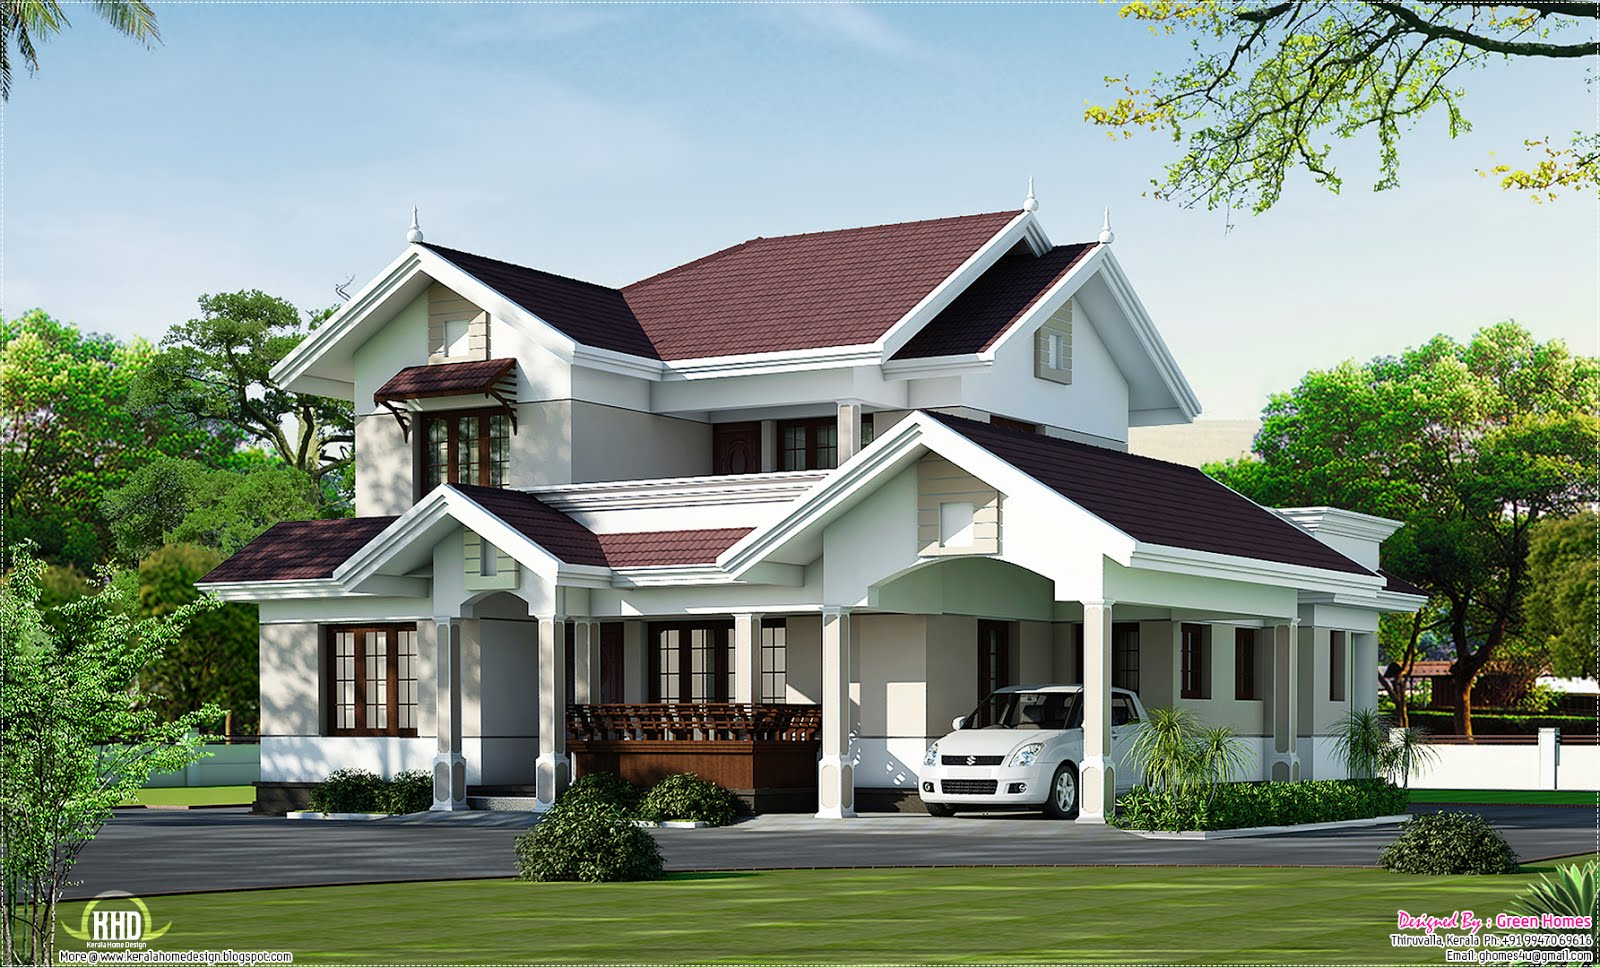 green homes designs. designing eco friendly green homes. green